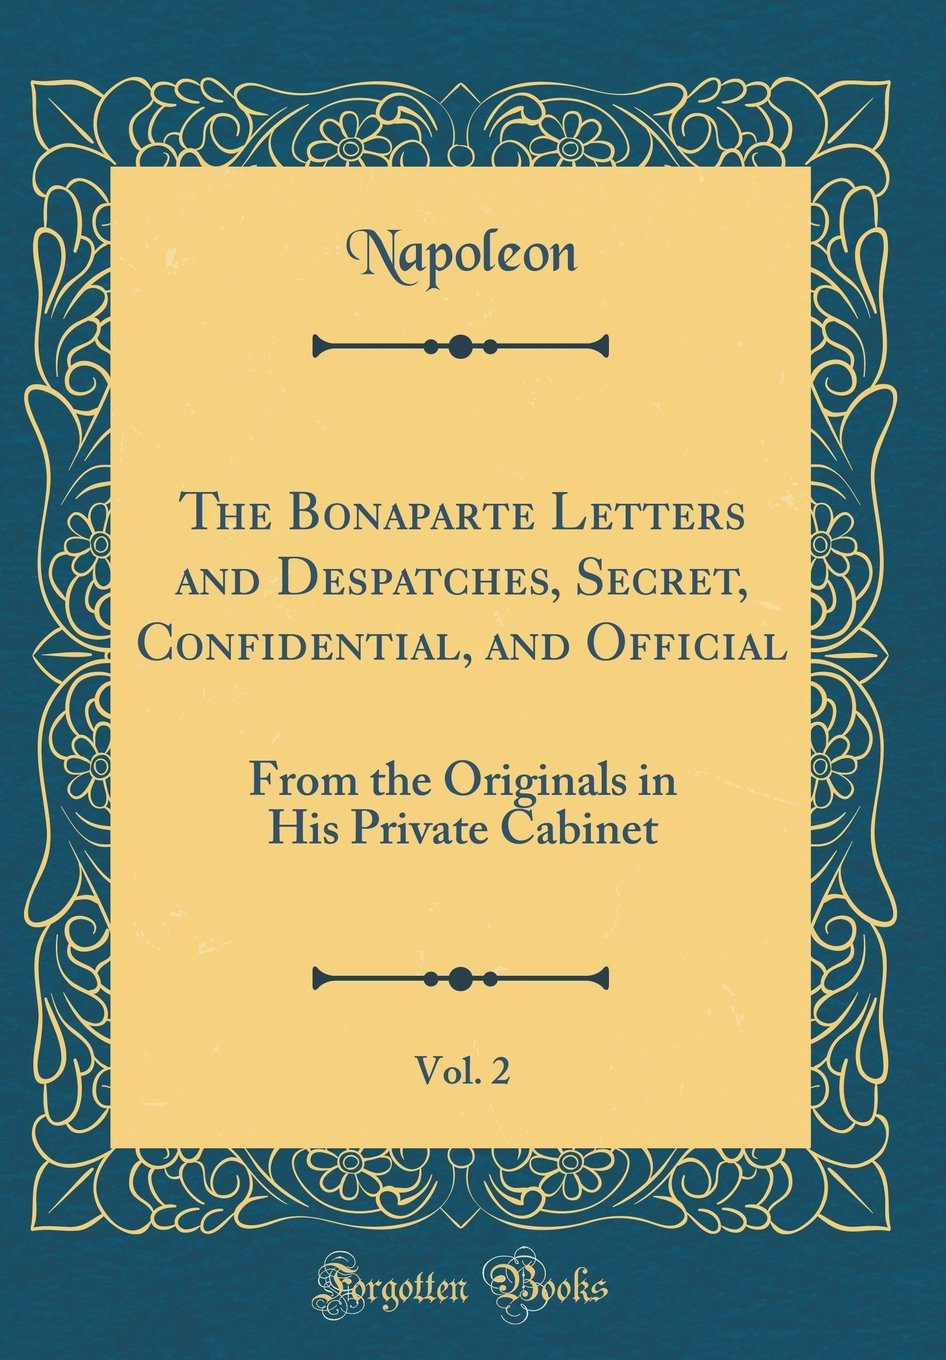 Download The Bonaparte Letters and Despatches, Secret, Confidential, and Official, Vol. 2: From the Originals in His Private Cabinet (Classic Reprint) ebook